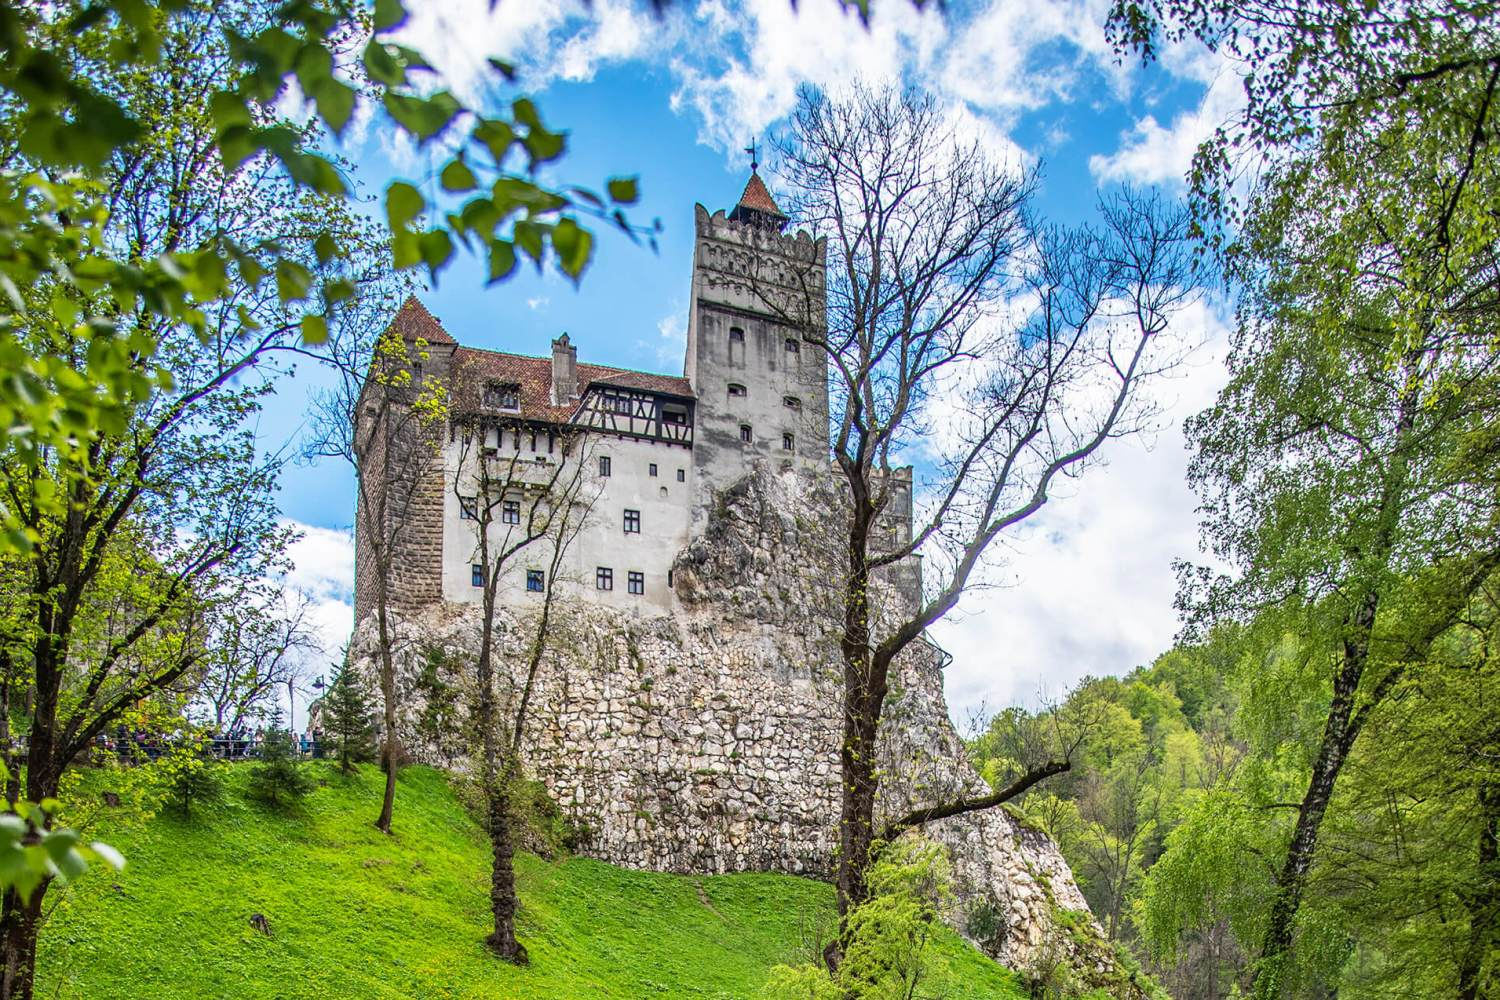 Things to do and see in Transylvania